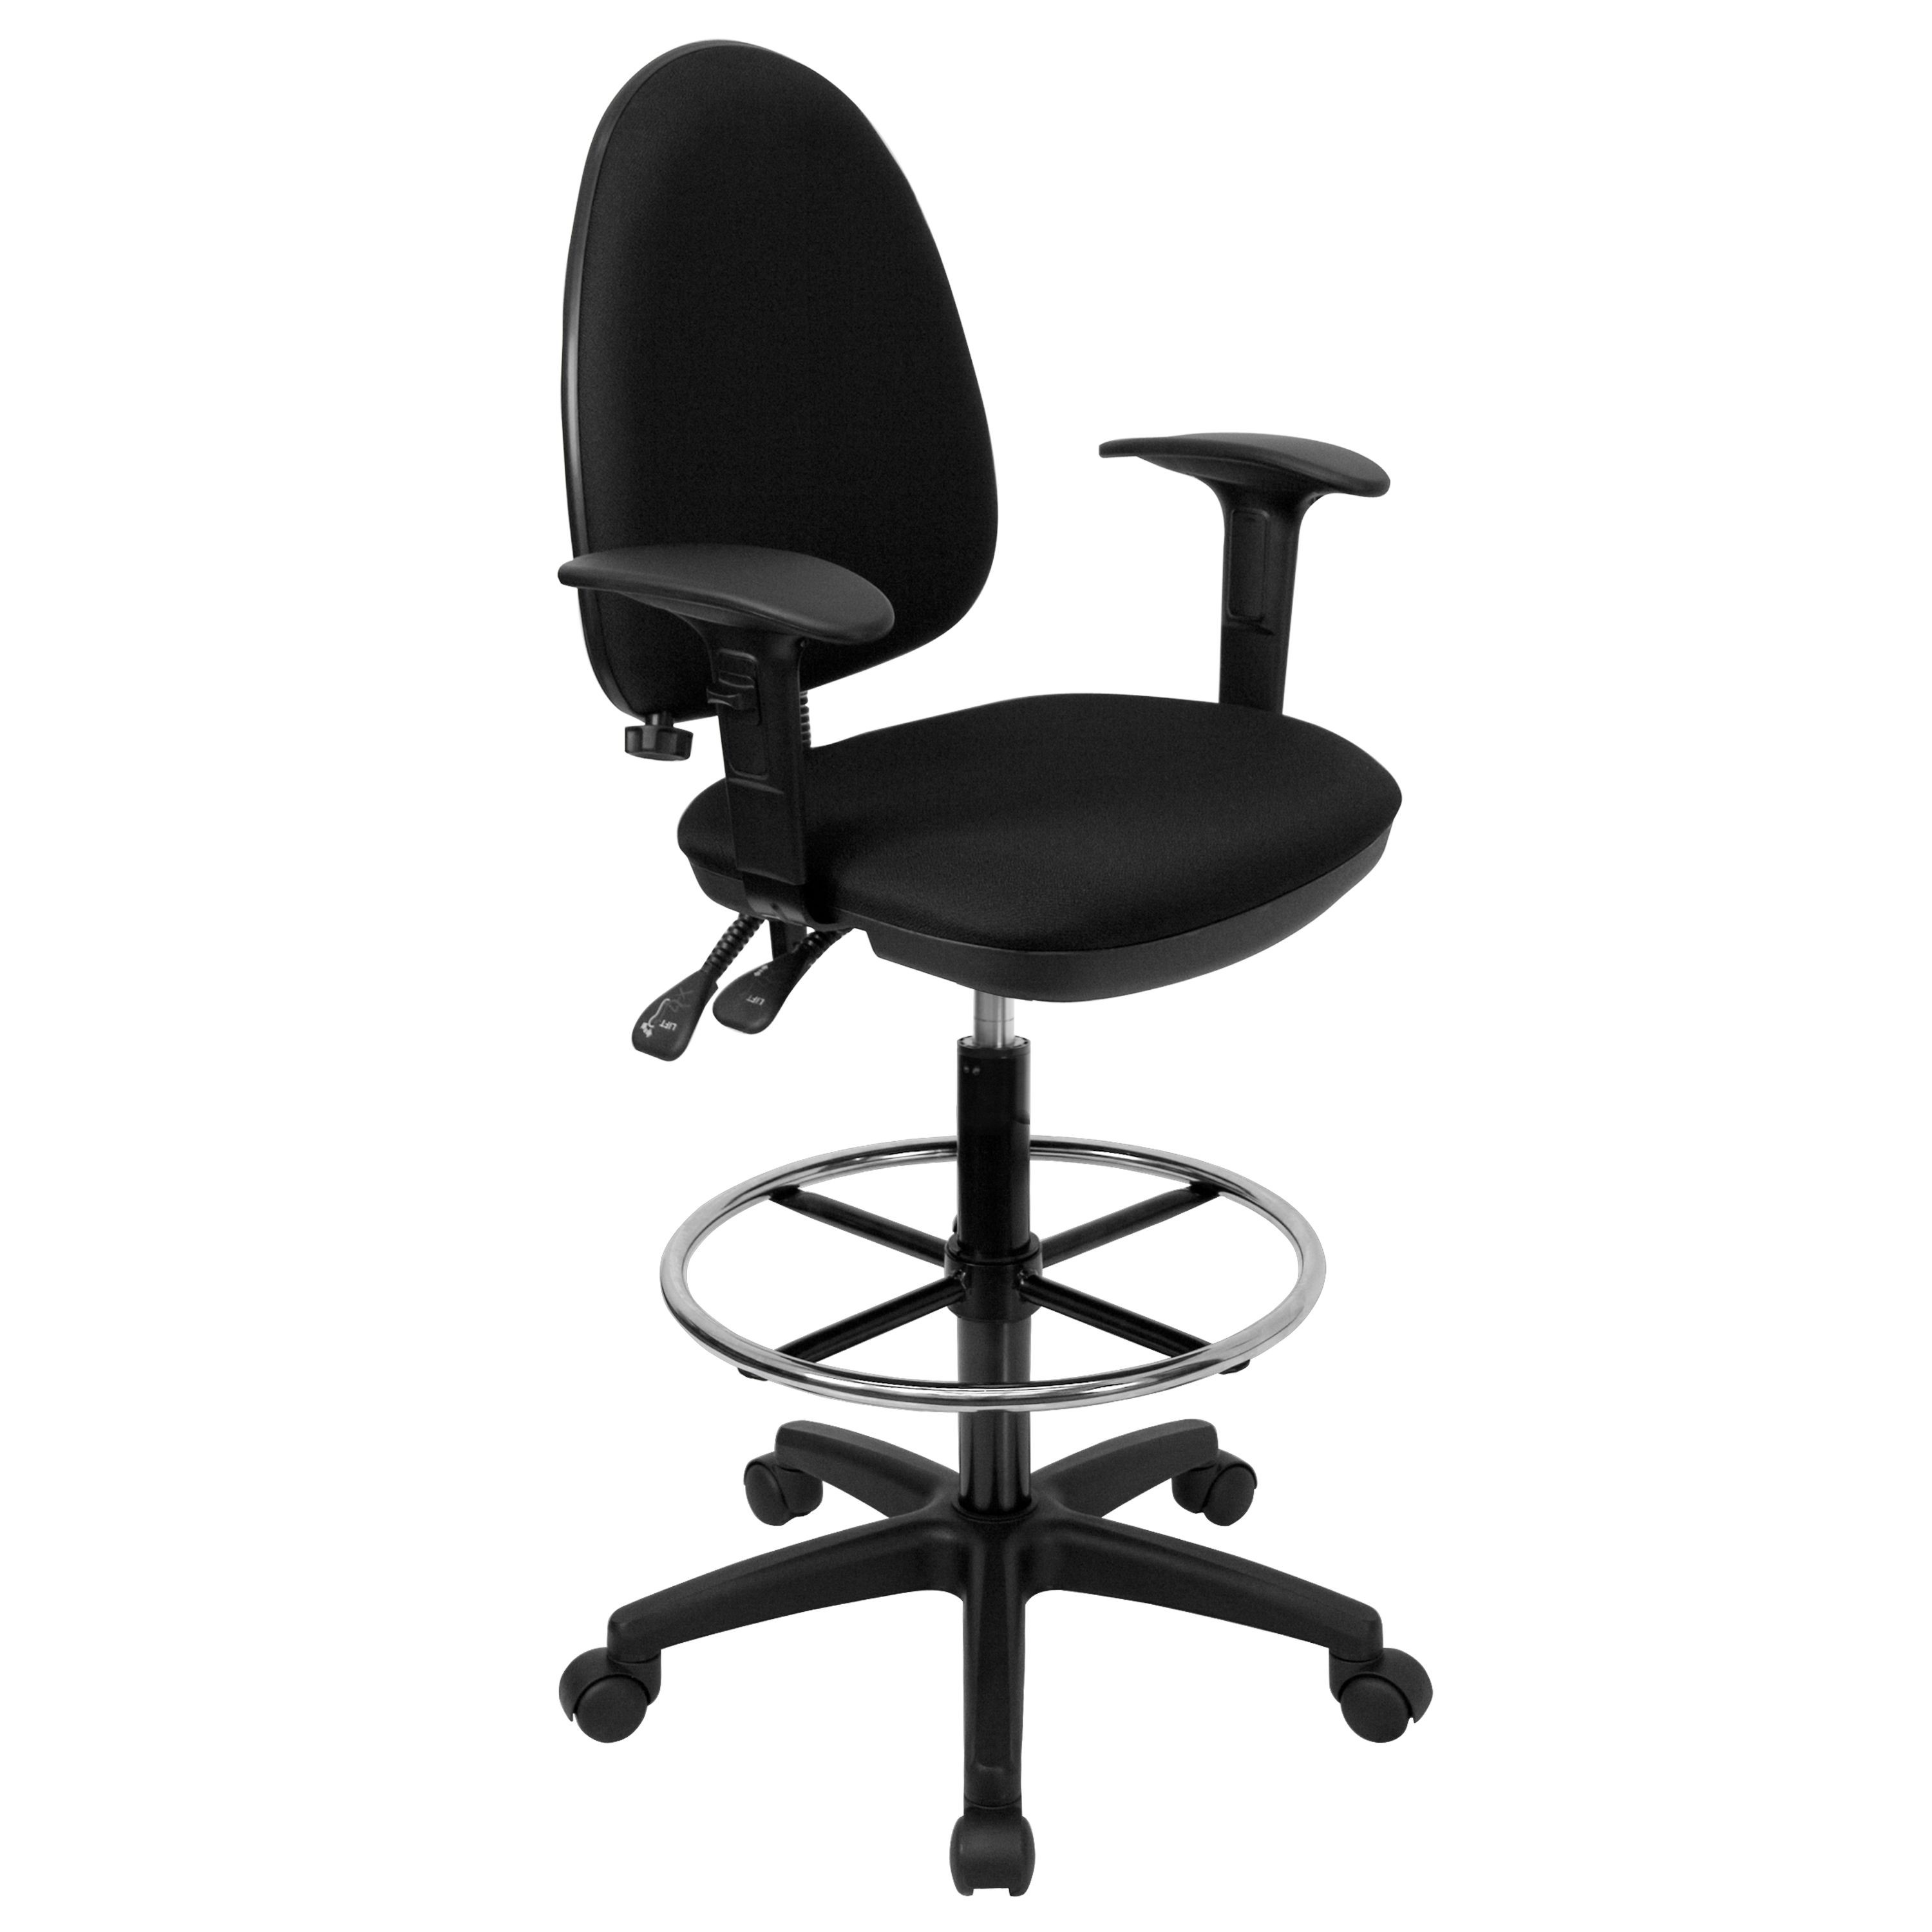 Flash Furniture WL-A654MG-BK-AD-GG Mid-Back Black Fabric Multi-Functional Drafting Stool with Arms and Adjustable Lumbar Support